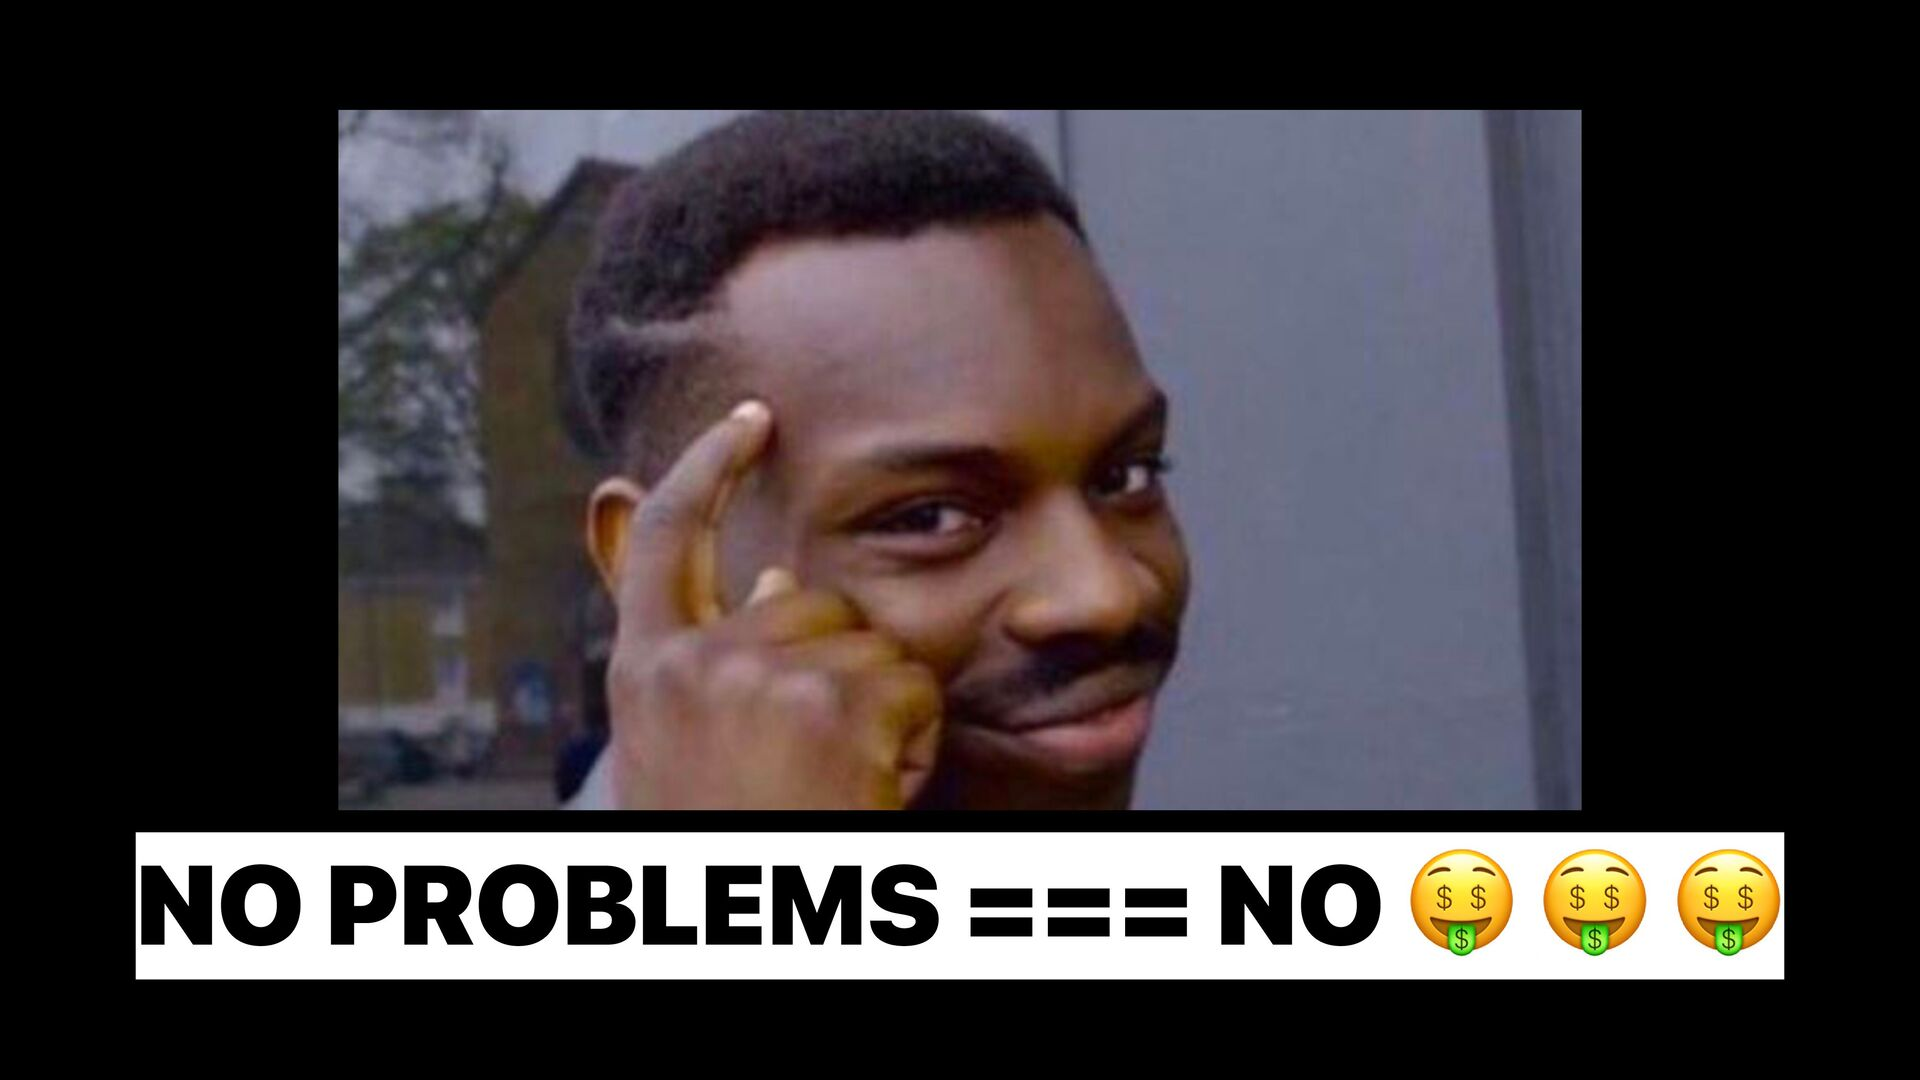 On the web there's new libraries every day @gln...